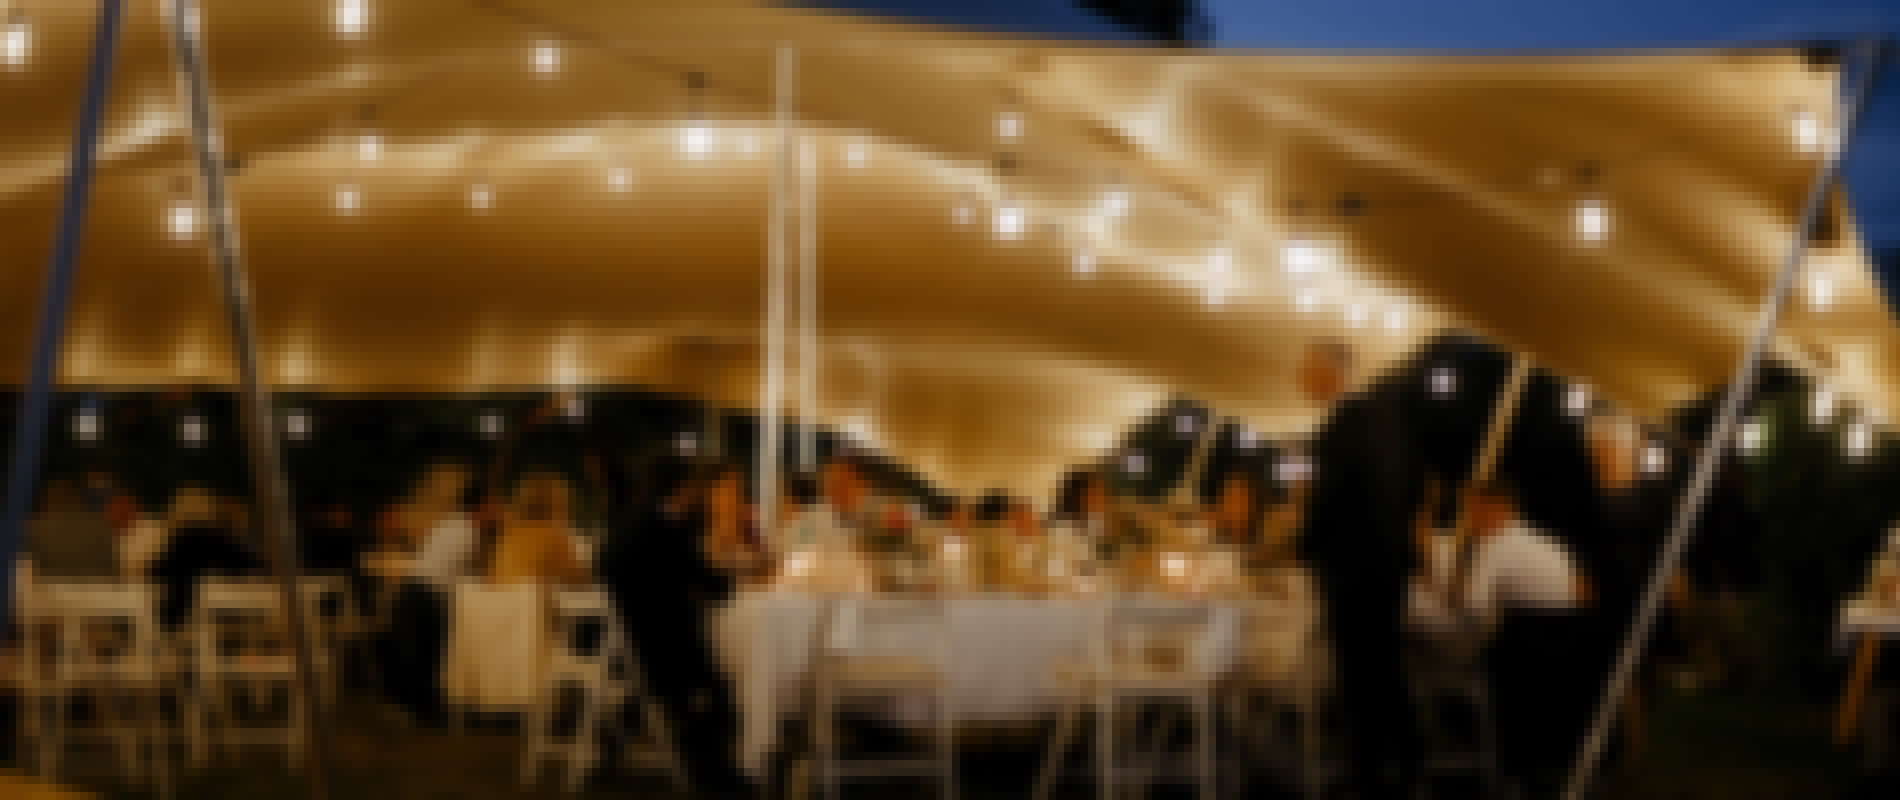 Alfresco wedding dinner under the marquee of Château de Bois Rigaud in the south of France